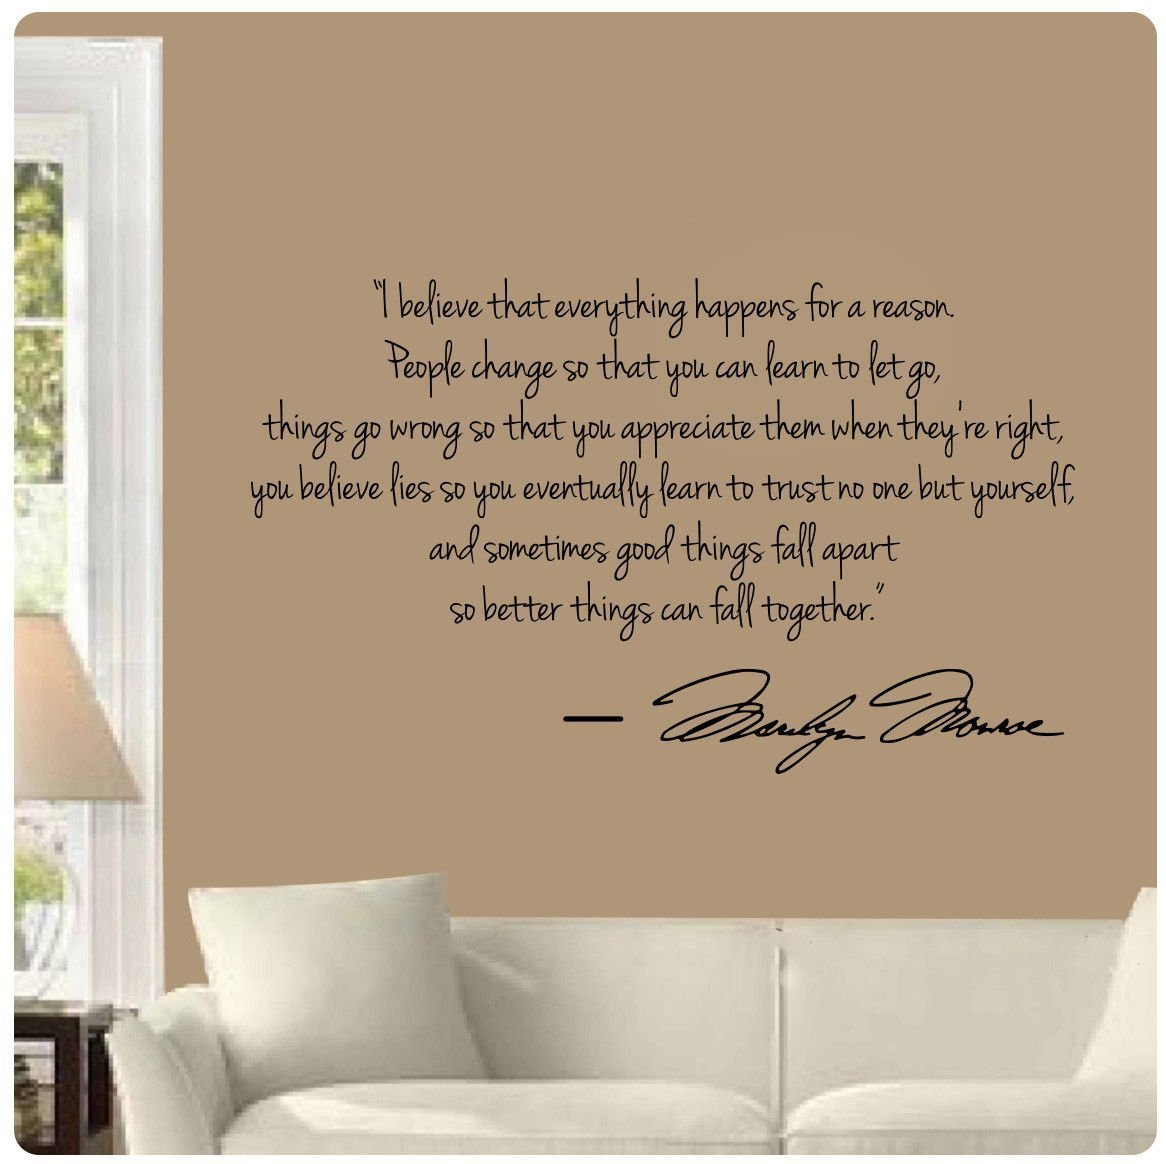 Wall Decals Quotes: Marilyn Monroe Quotes Wall Decals